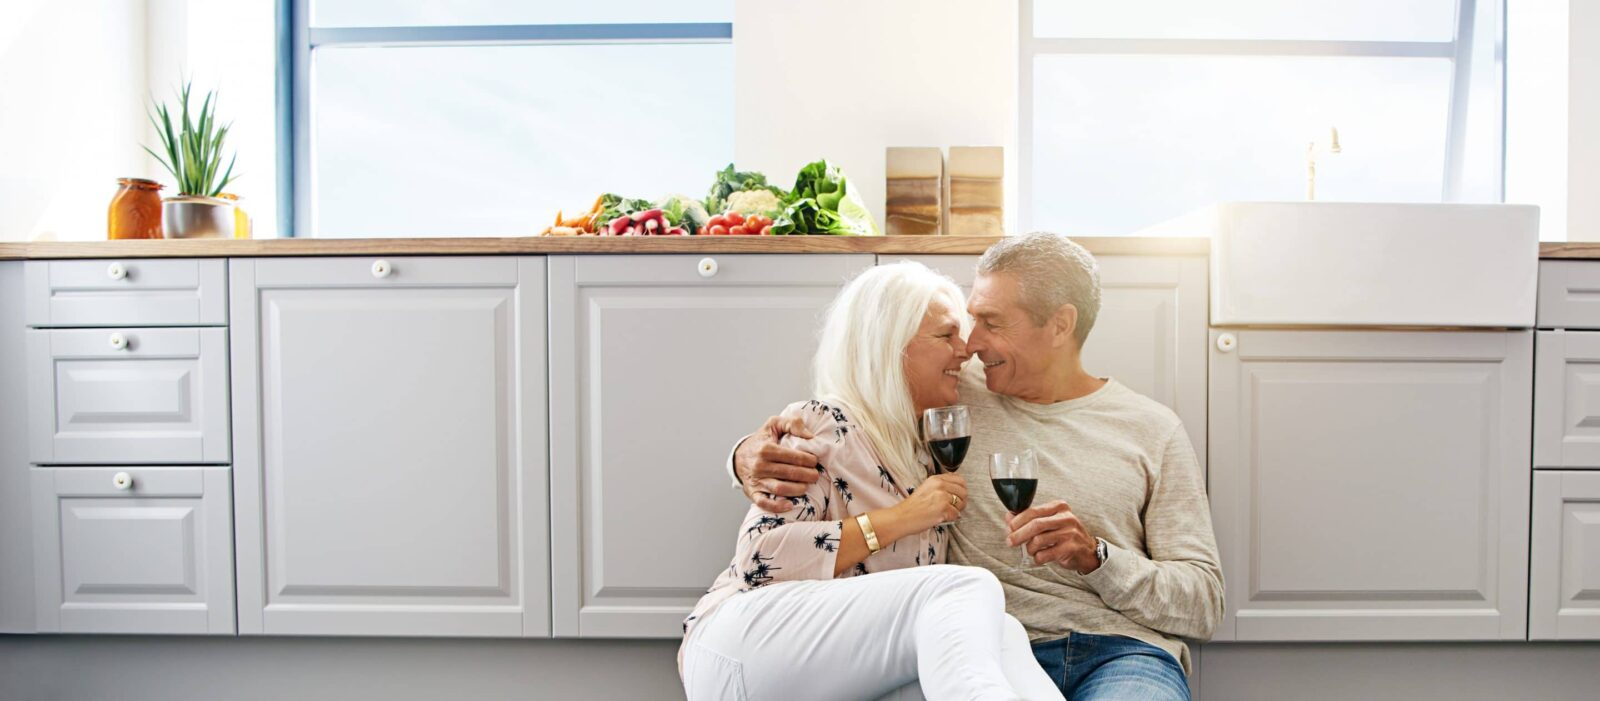 Two elderly people sitting on the kitchen floor with wine glasses, sharing an intimate moment